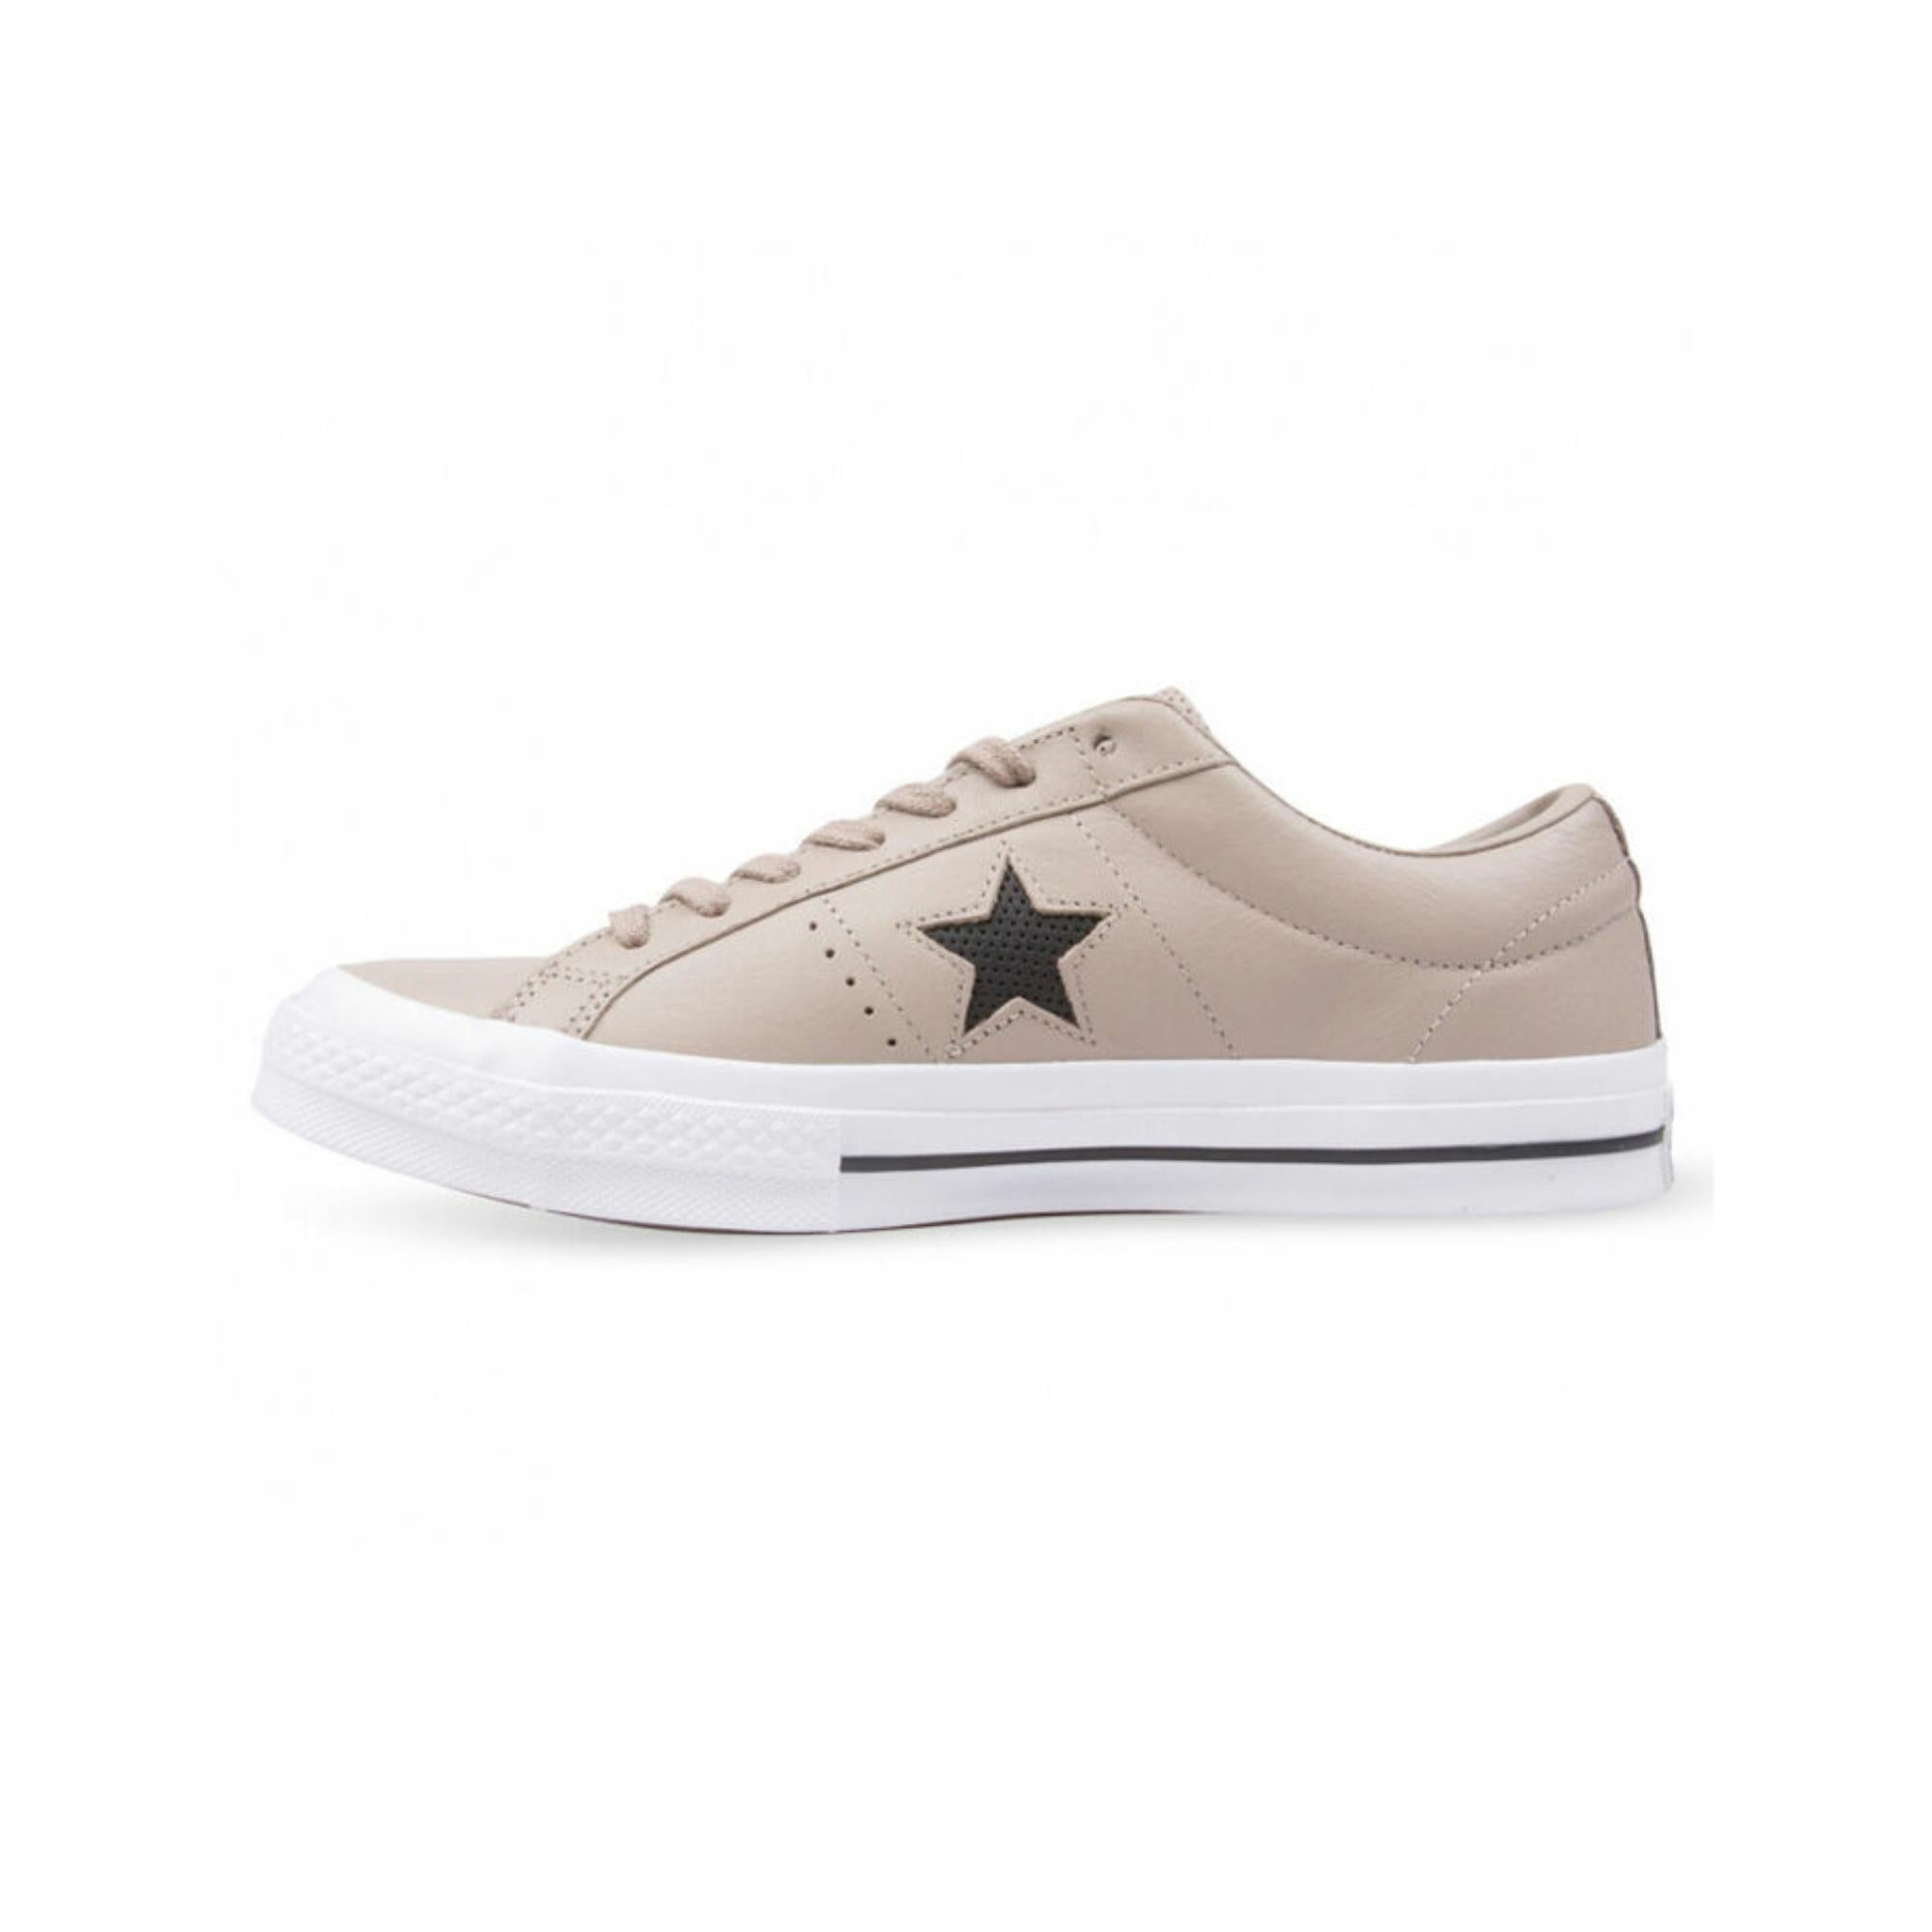 ONE STAR OX MALTED/BLACK/WHITE 158470C